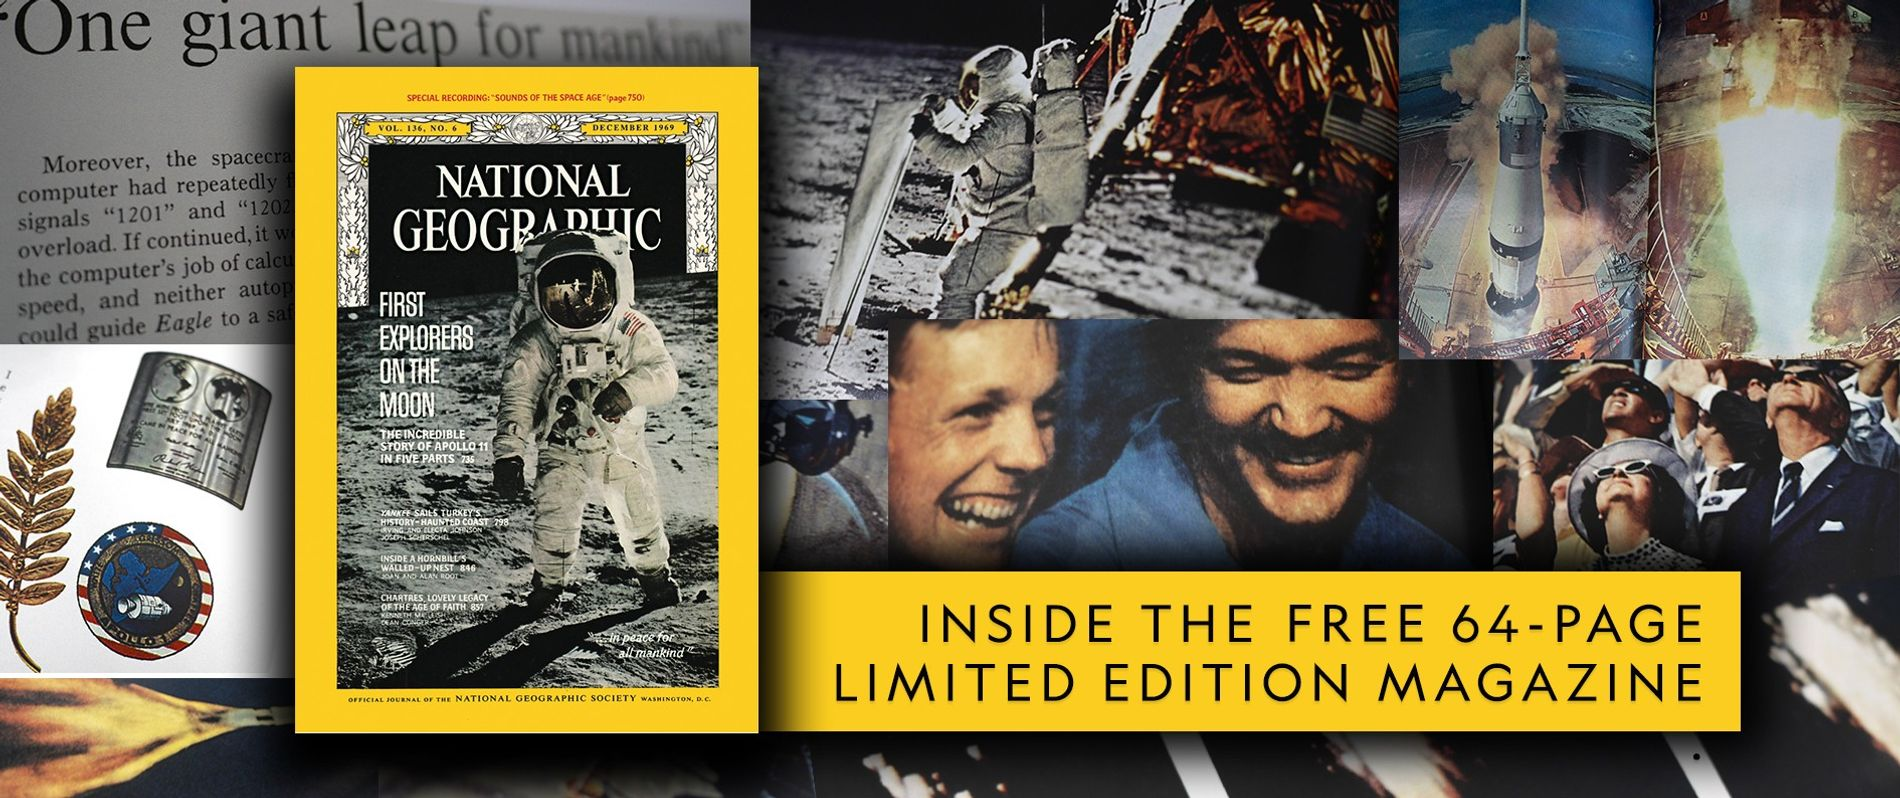 This special edition reprint of the original 1969 coverage of the Apollo 11 moon anding is ...